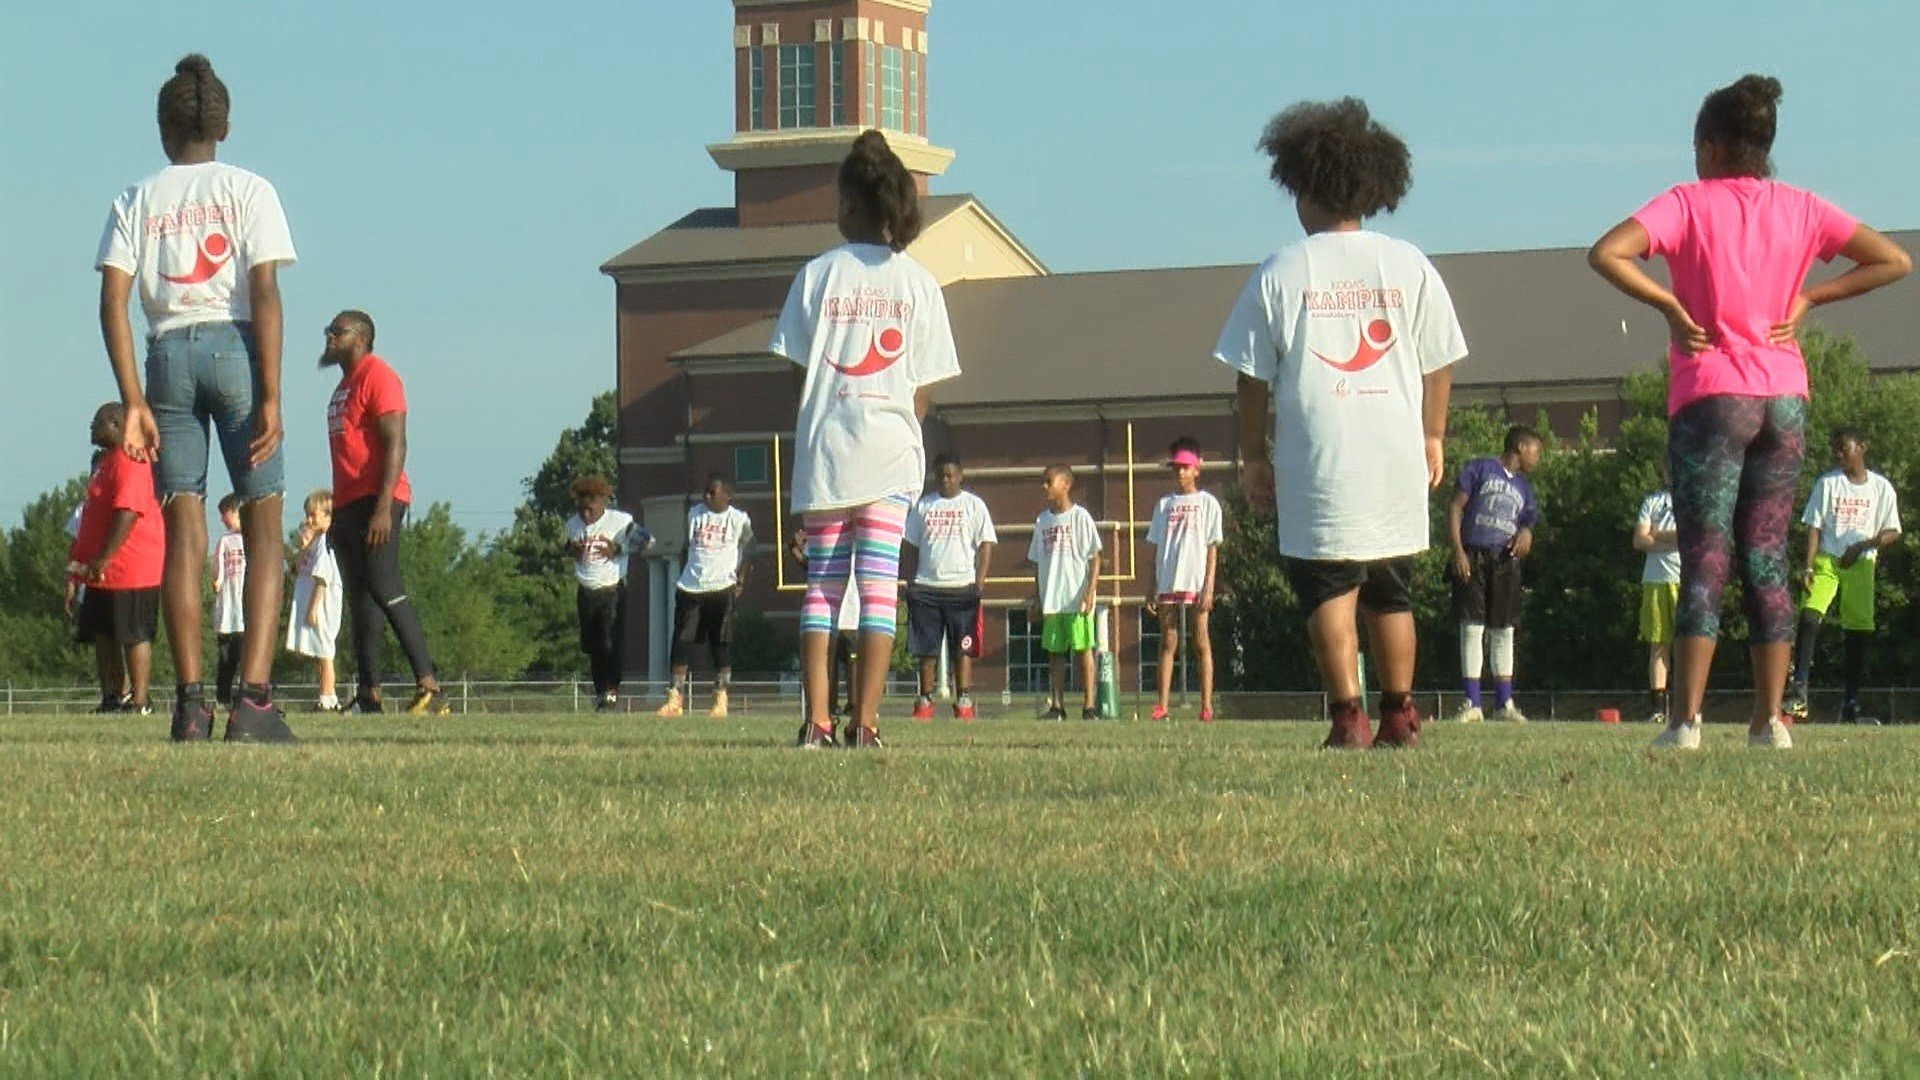 Several kids showed up for Koda's Kids Foundation's 9th Annual Football and Cheer Camp earlier today at South Aiken High School.  This event was free to kids, all they had to do was bring canned good donations. (WFXG)